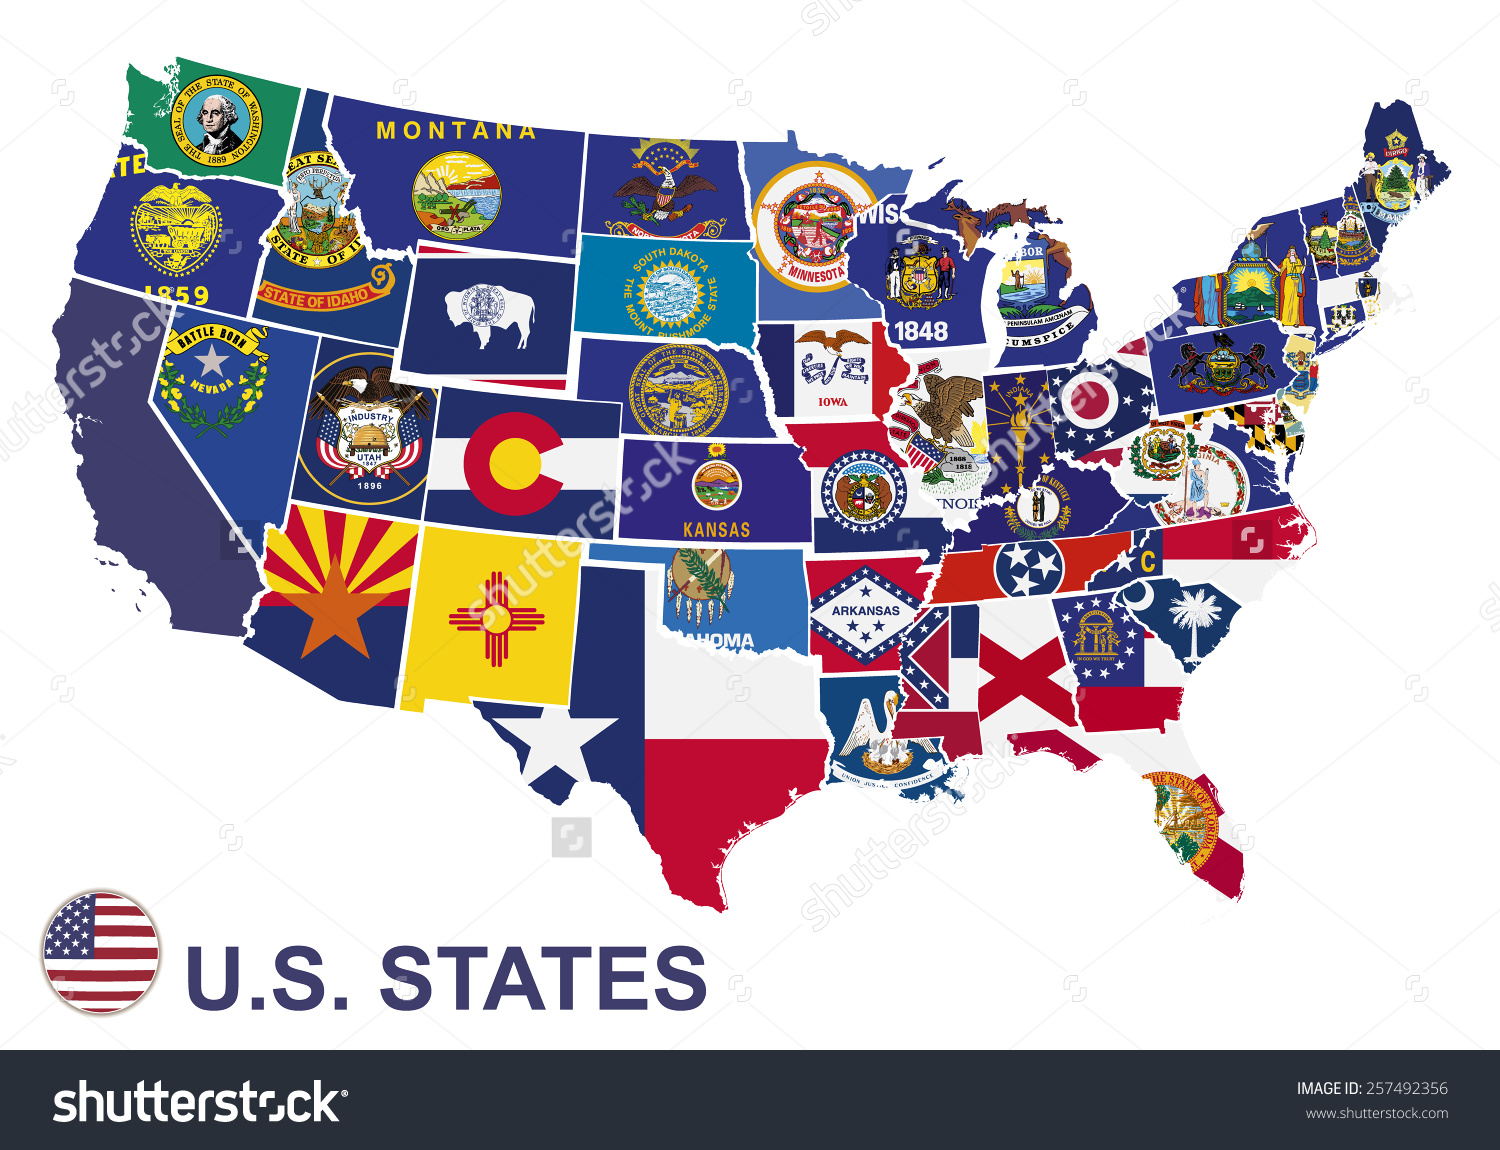 Us map flag clipart graphic freeuse download Us Map Flags States On White Stock Vector 257492356 - Shutterstock graphic freeuse download